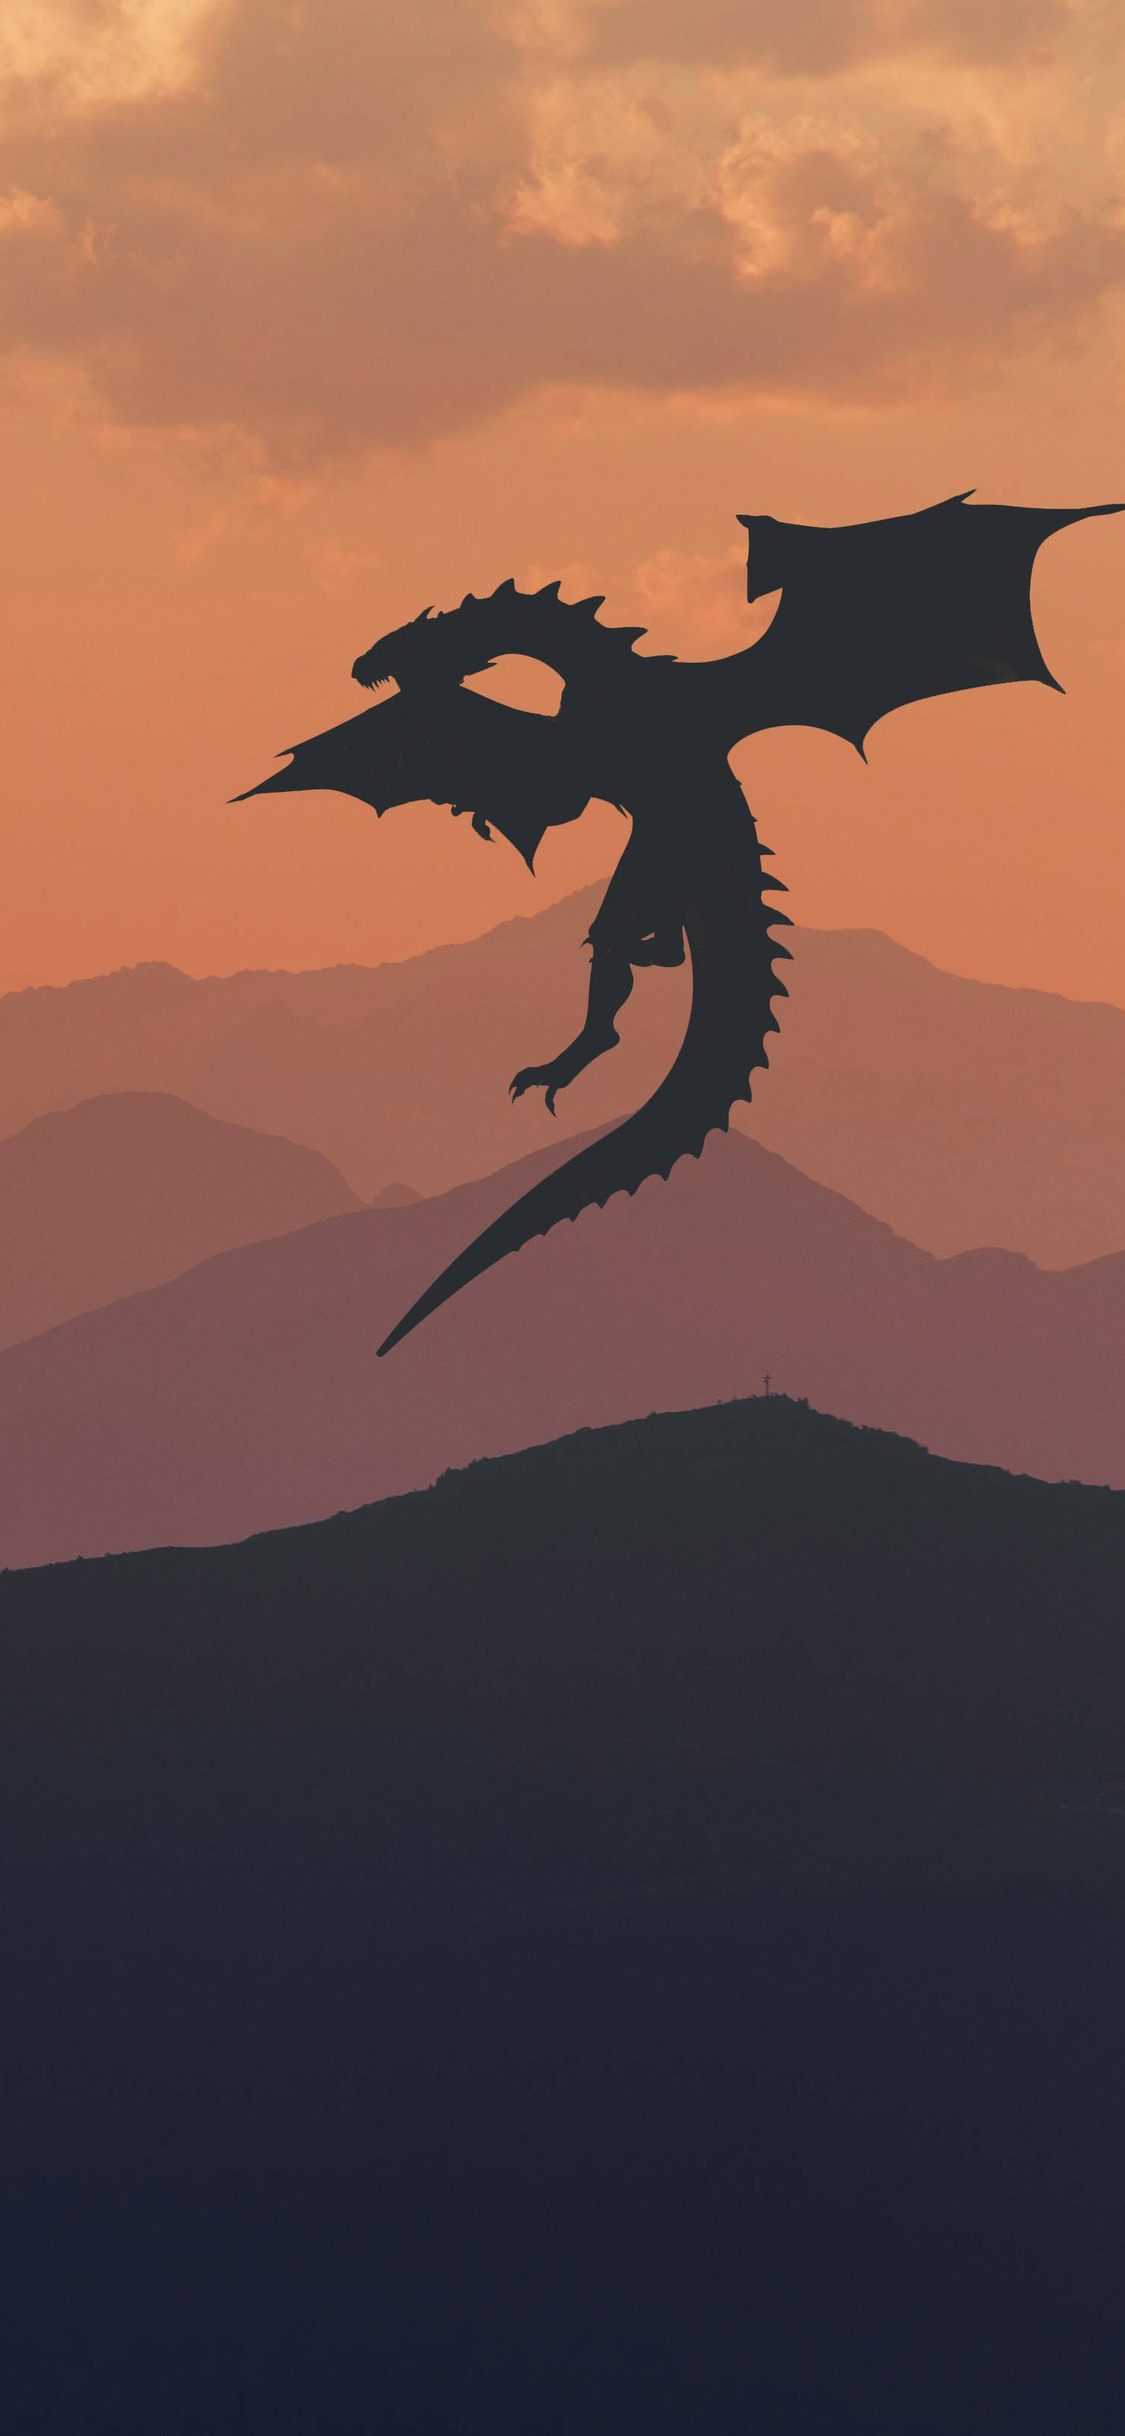 Best Game Of Thrones Wallpapers For Iphone